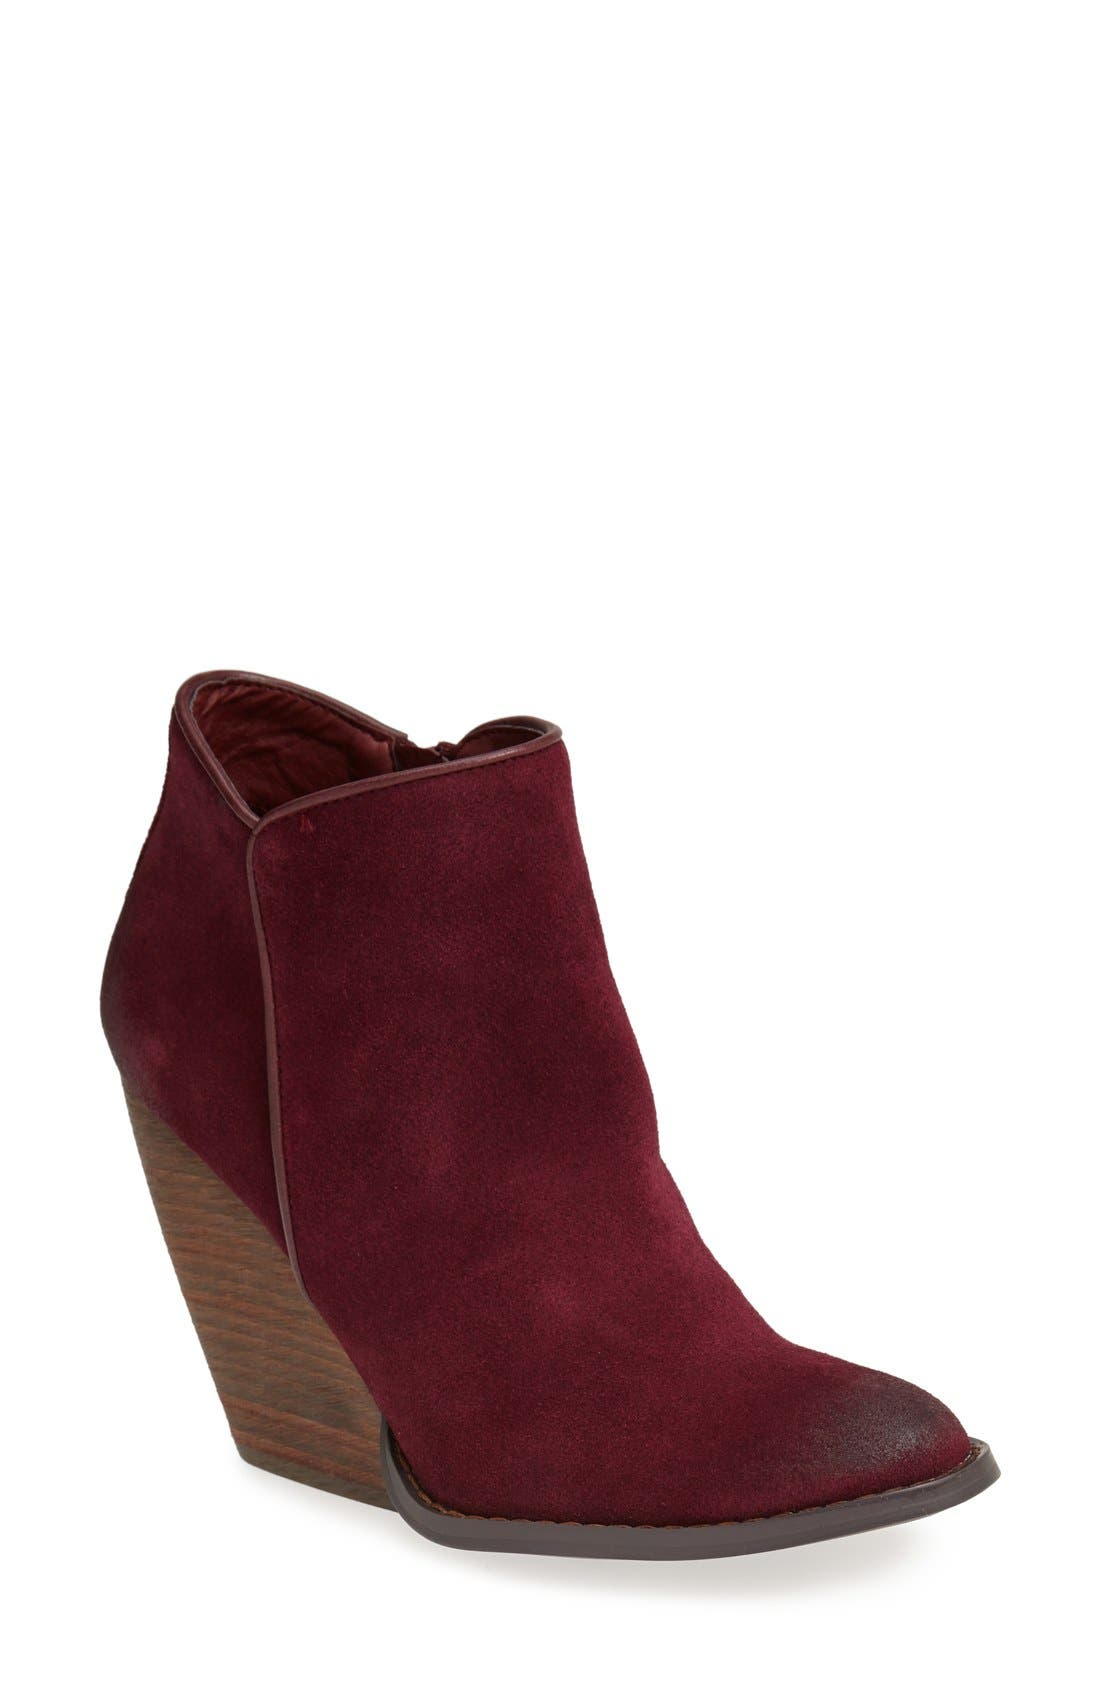 Alternate Image 1 Selected - Very Volatile 'Whitby' Demi Wedge Bootie (Women)